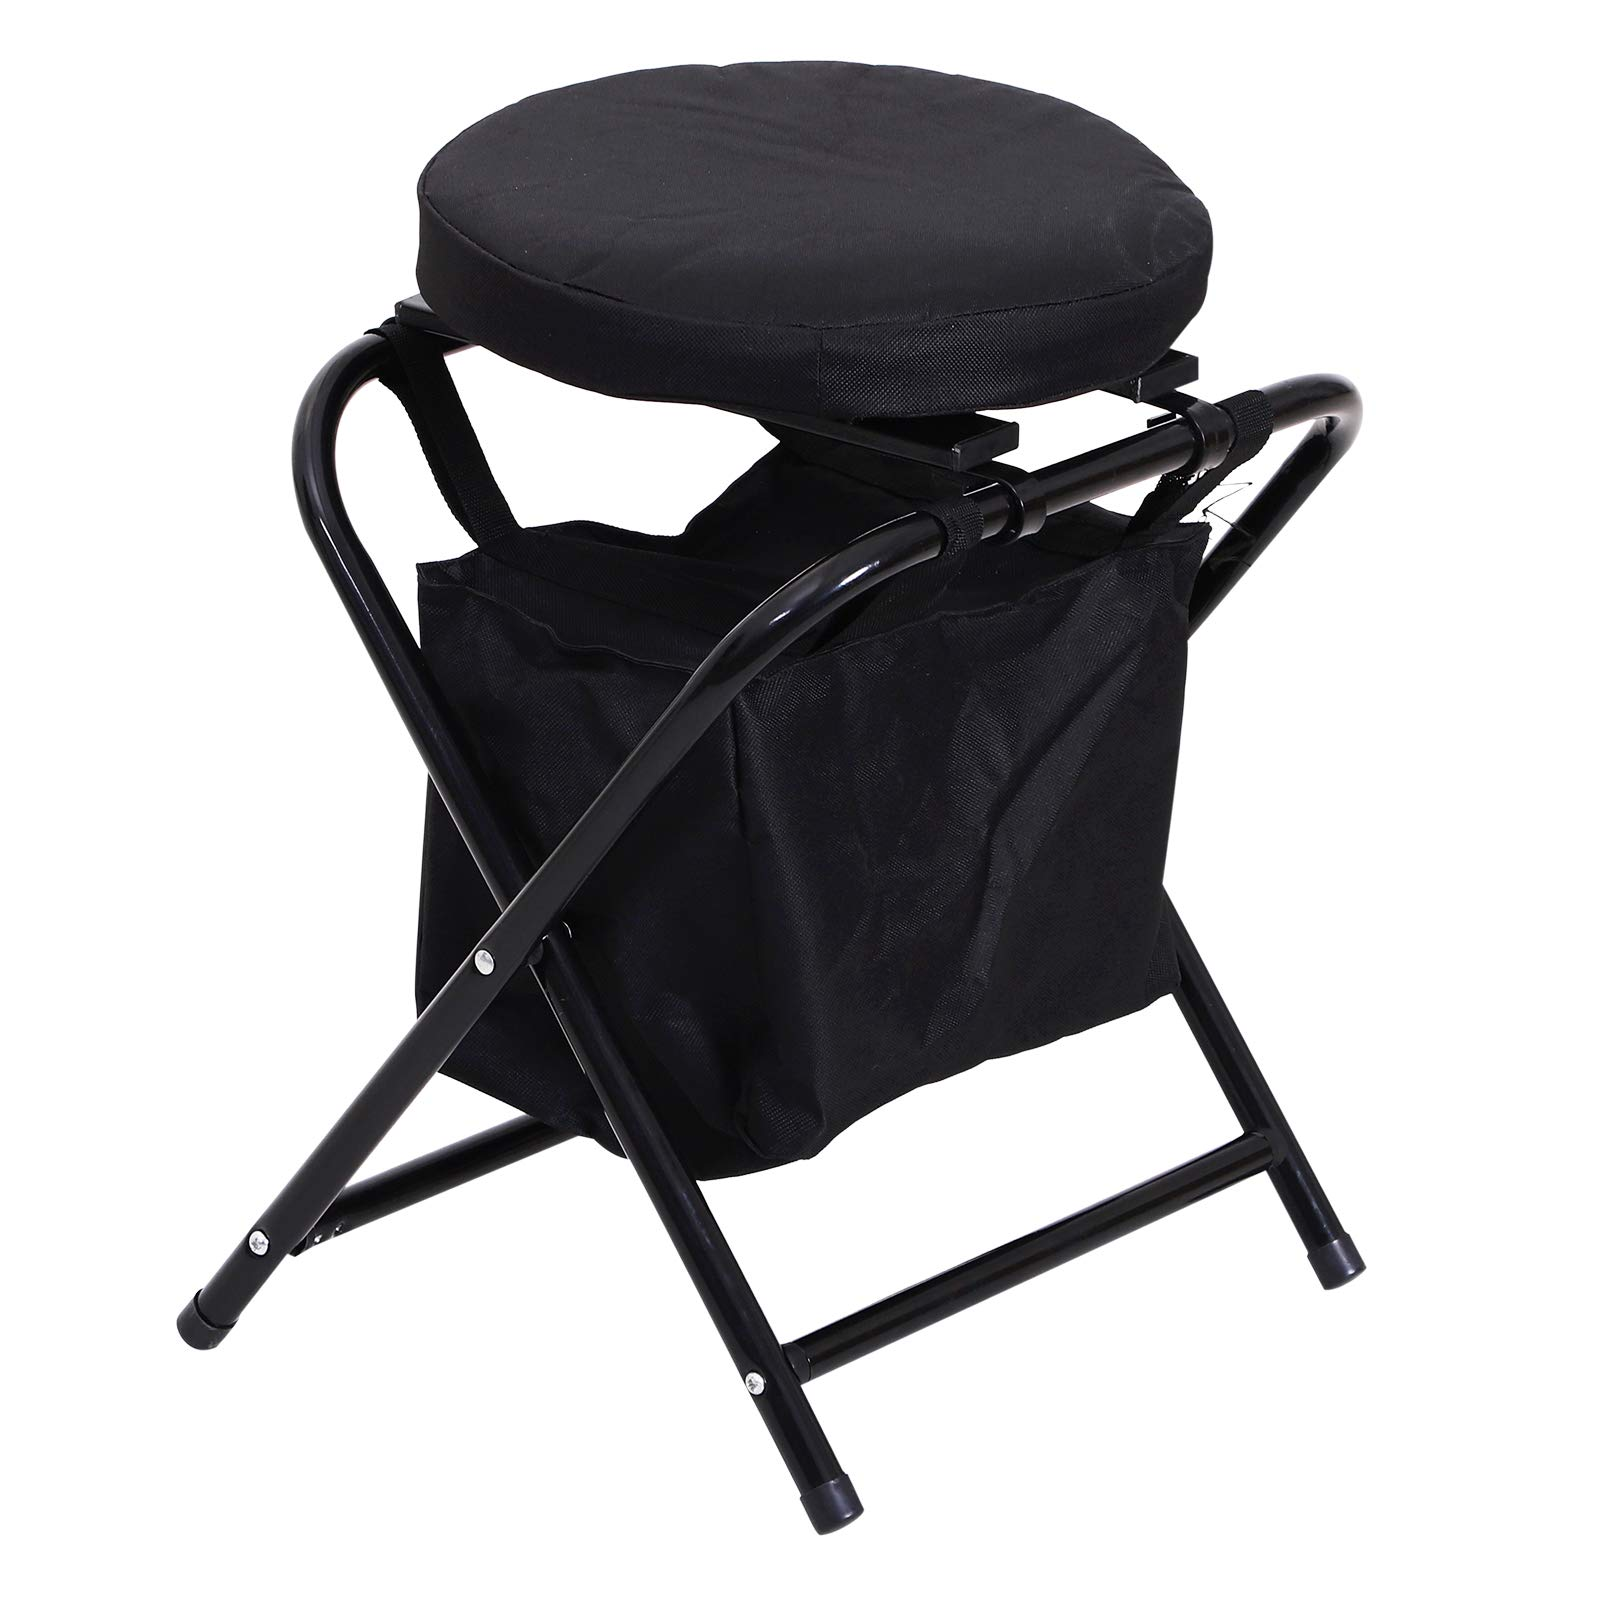 Outsunny 19'' 360 Degree Swivel Foldable Travel Camping Stool with Storage Bag - Black